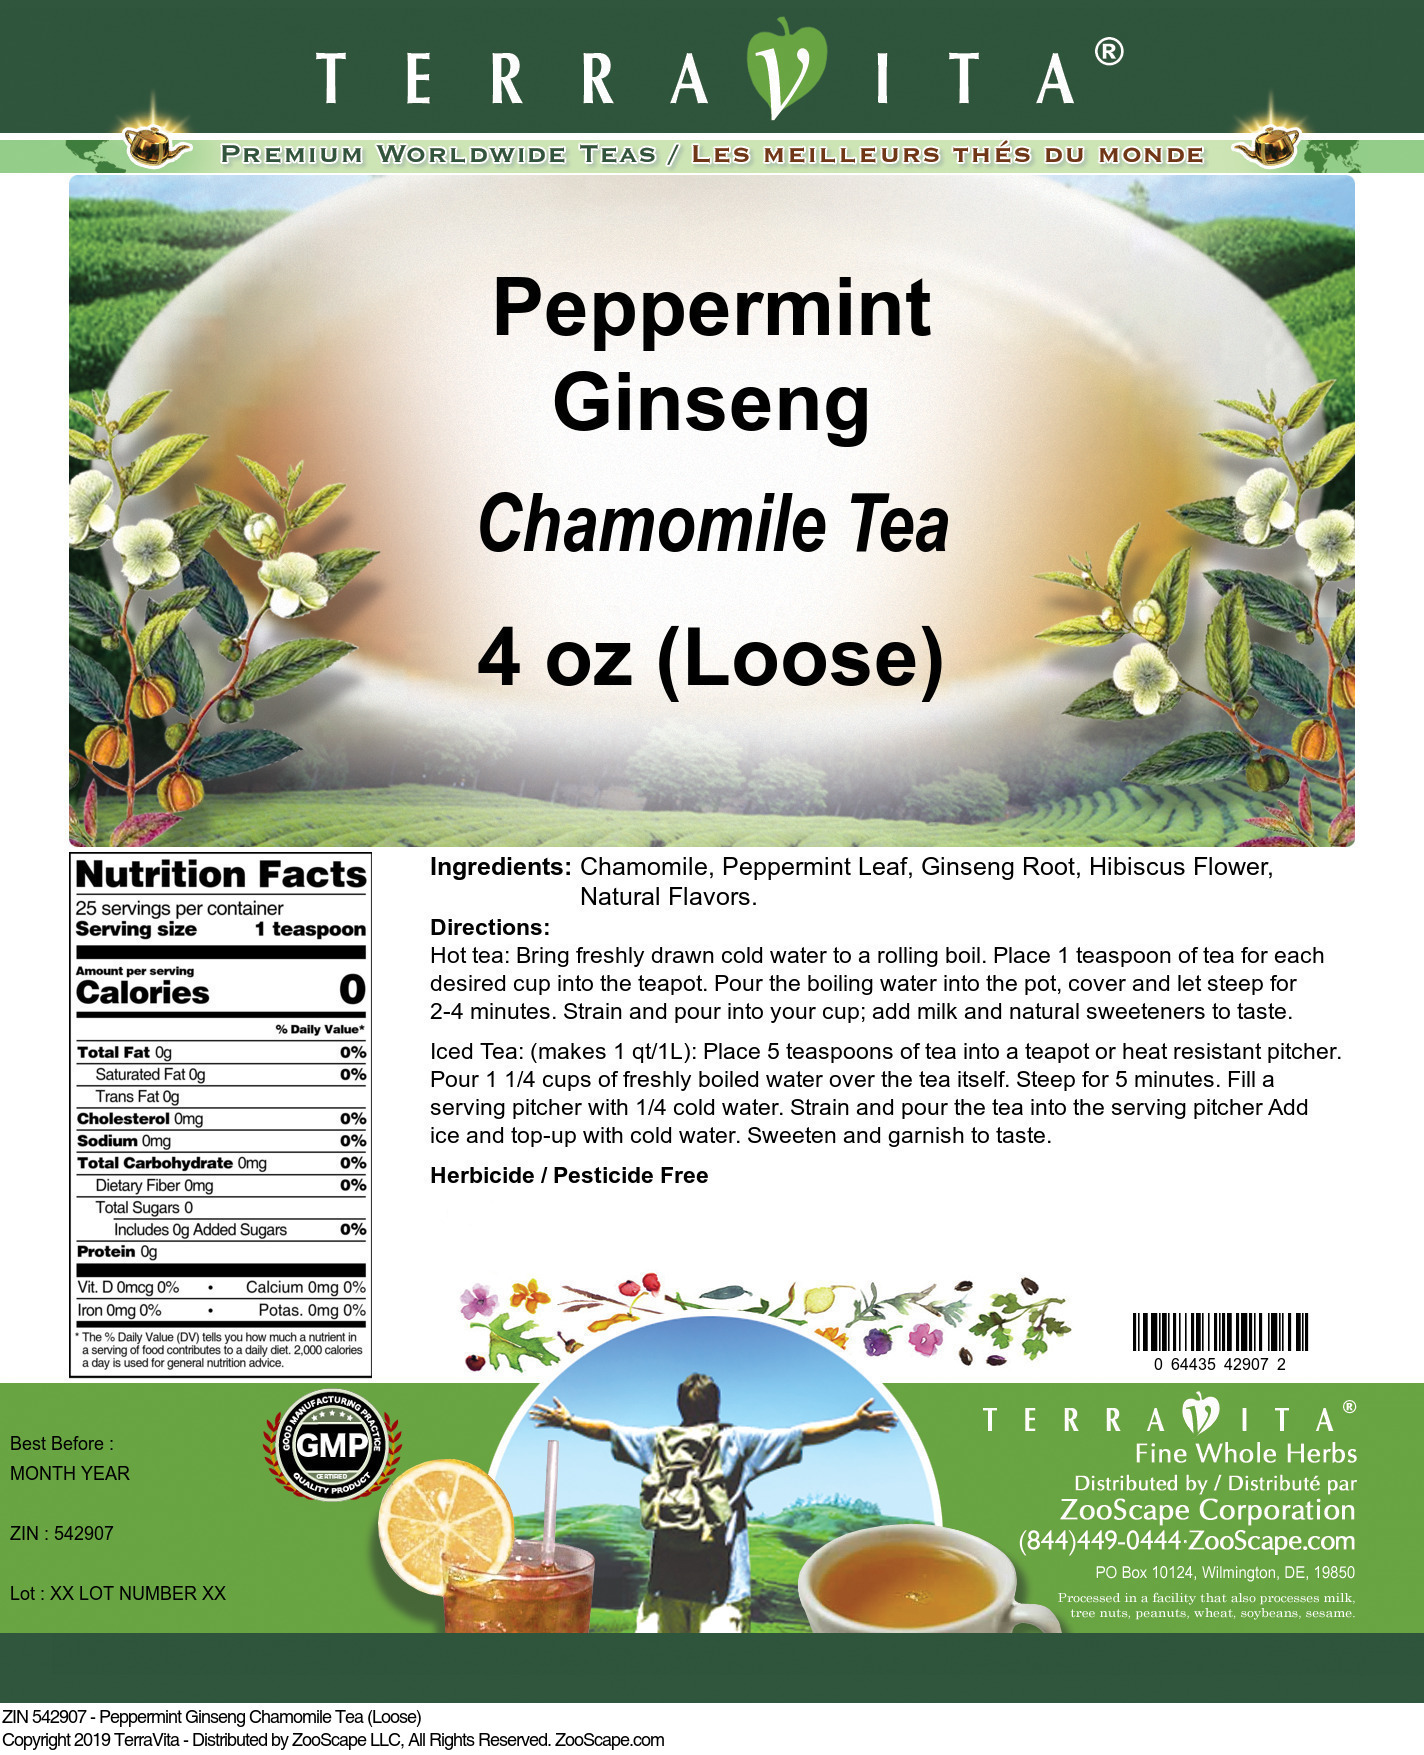 Peppermint Ginseng Chamomile Tea (Loose)